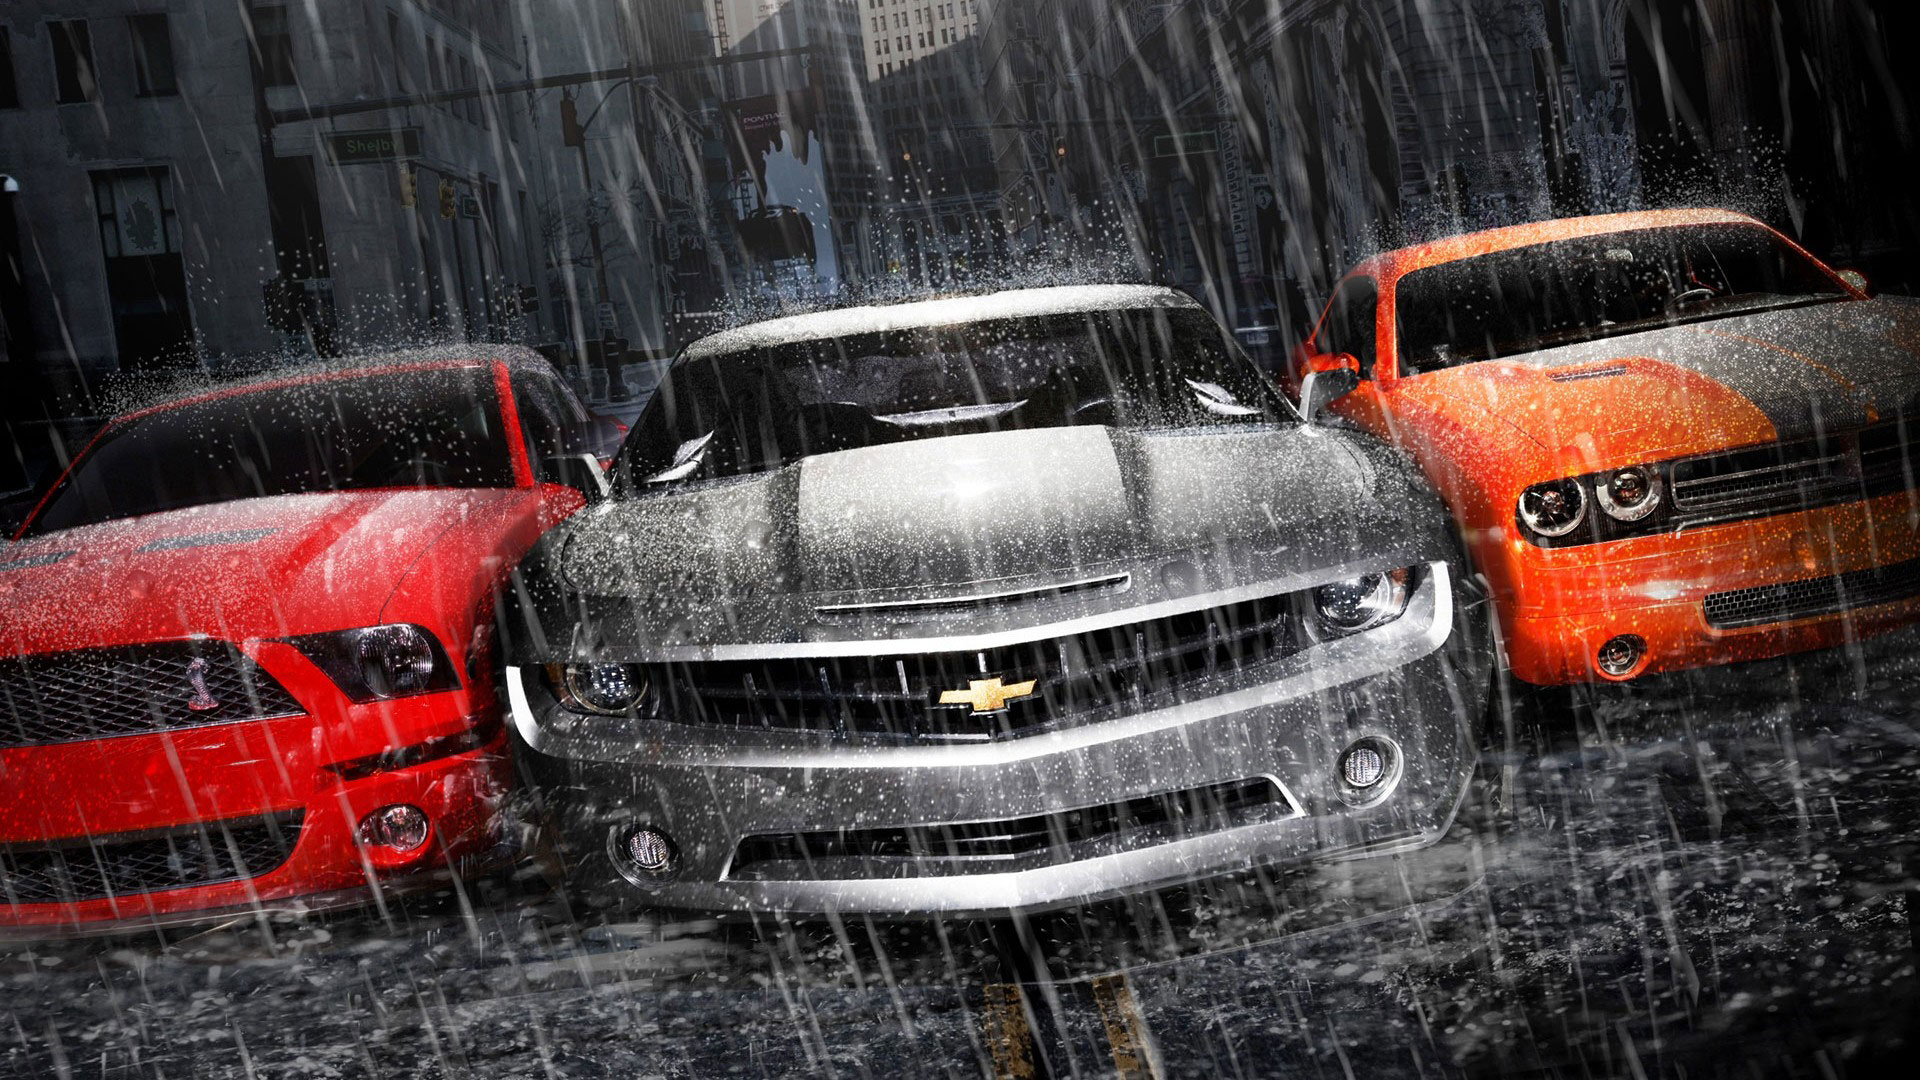 Cool-Cars-Hd-in-1920x1080PX-with-wallpaper-wp3604278